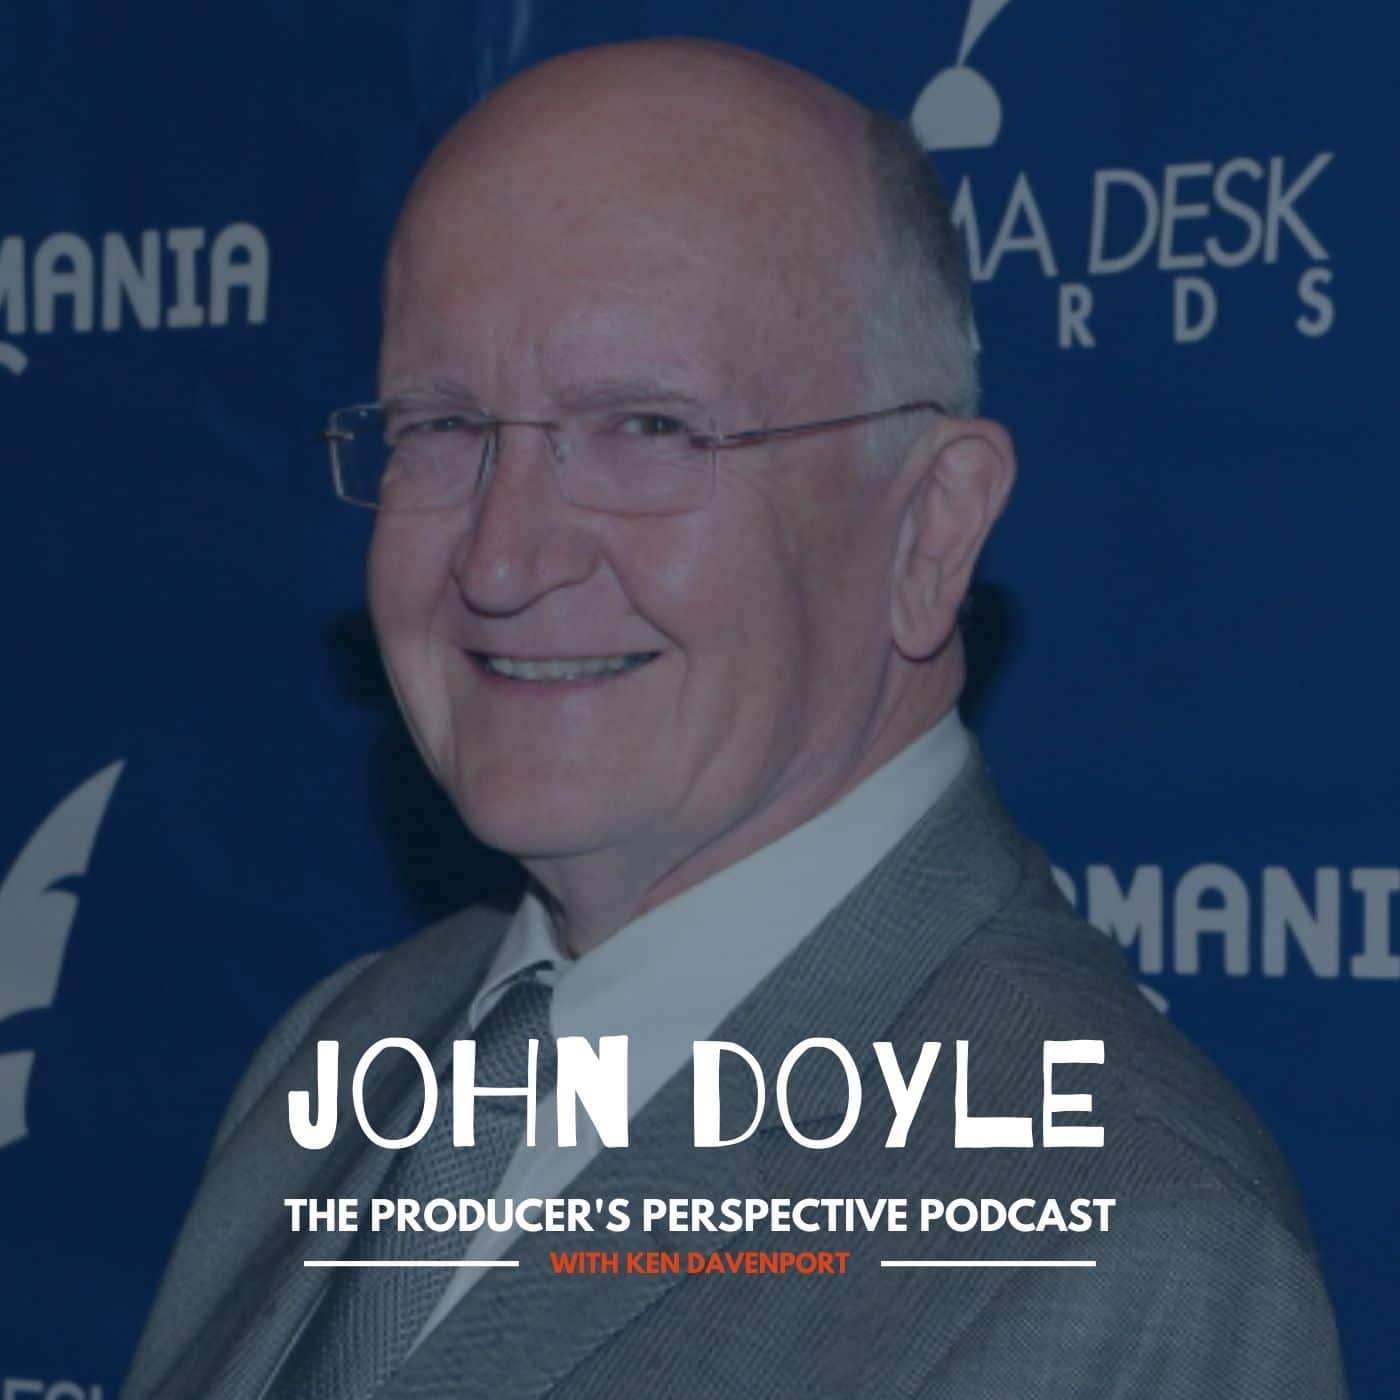 Ken Davenport's The Producer's Perspective Podcast Episode 71 - John Doyle